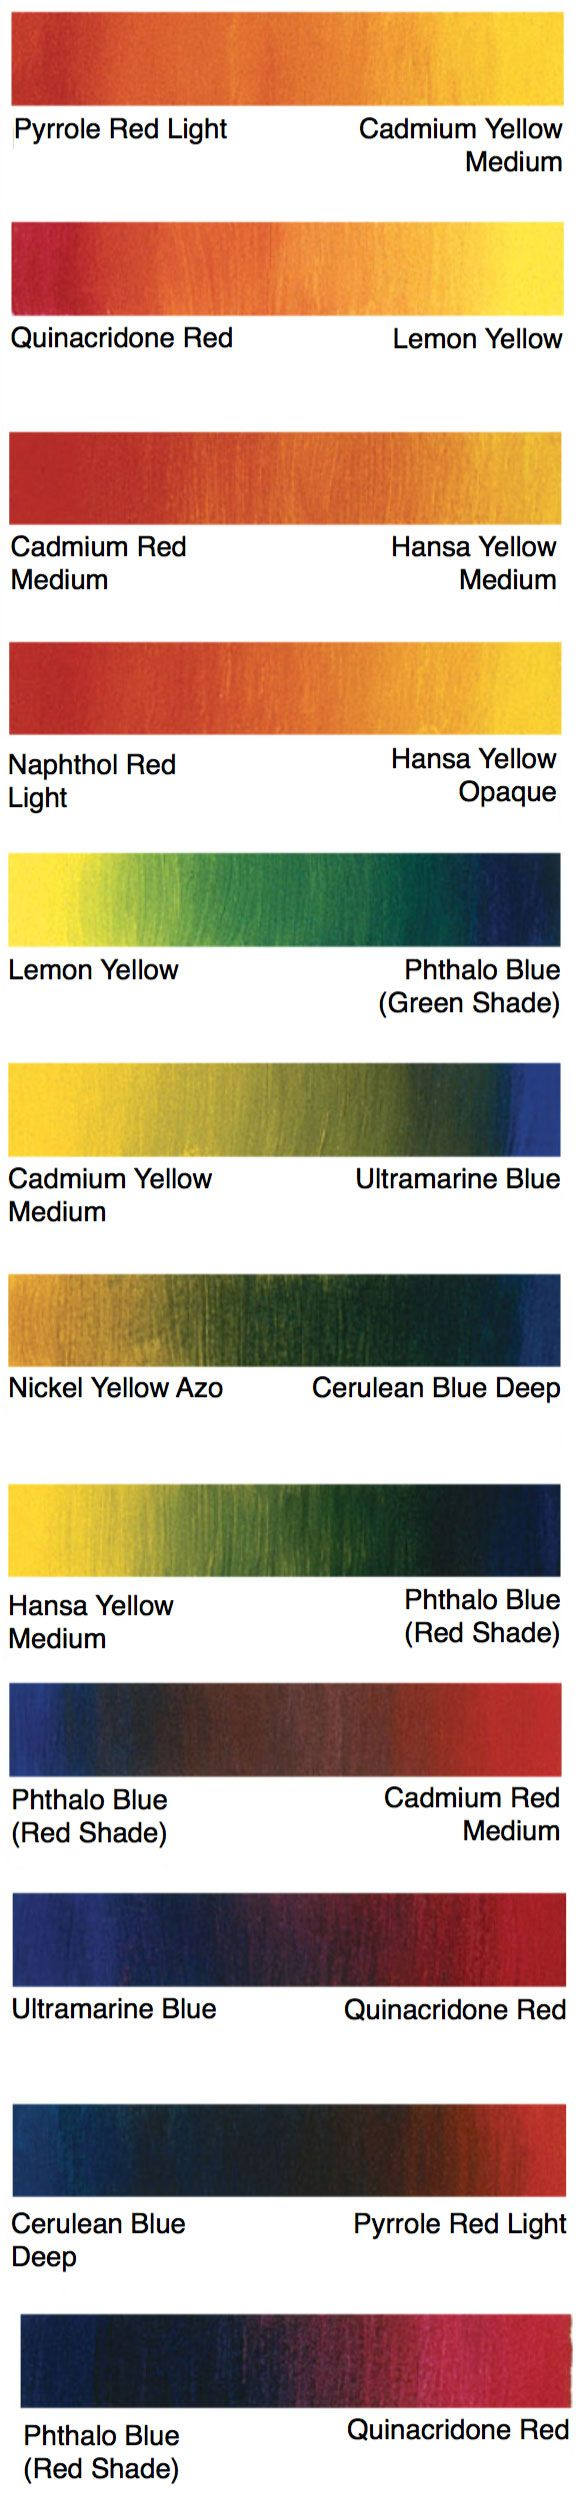 Folk art acrylic paint color chart - Helpful Color Mixing Chart And Tips From Nita Leland At Artistsnetwork Com Painting